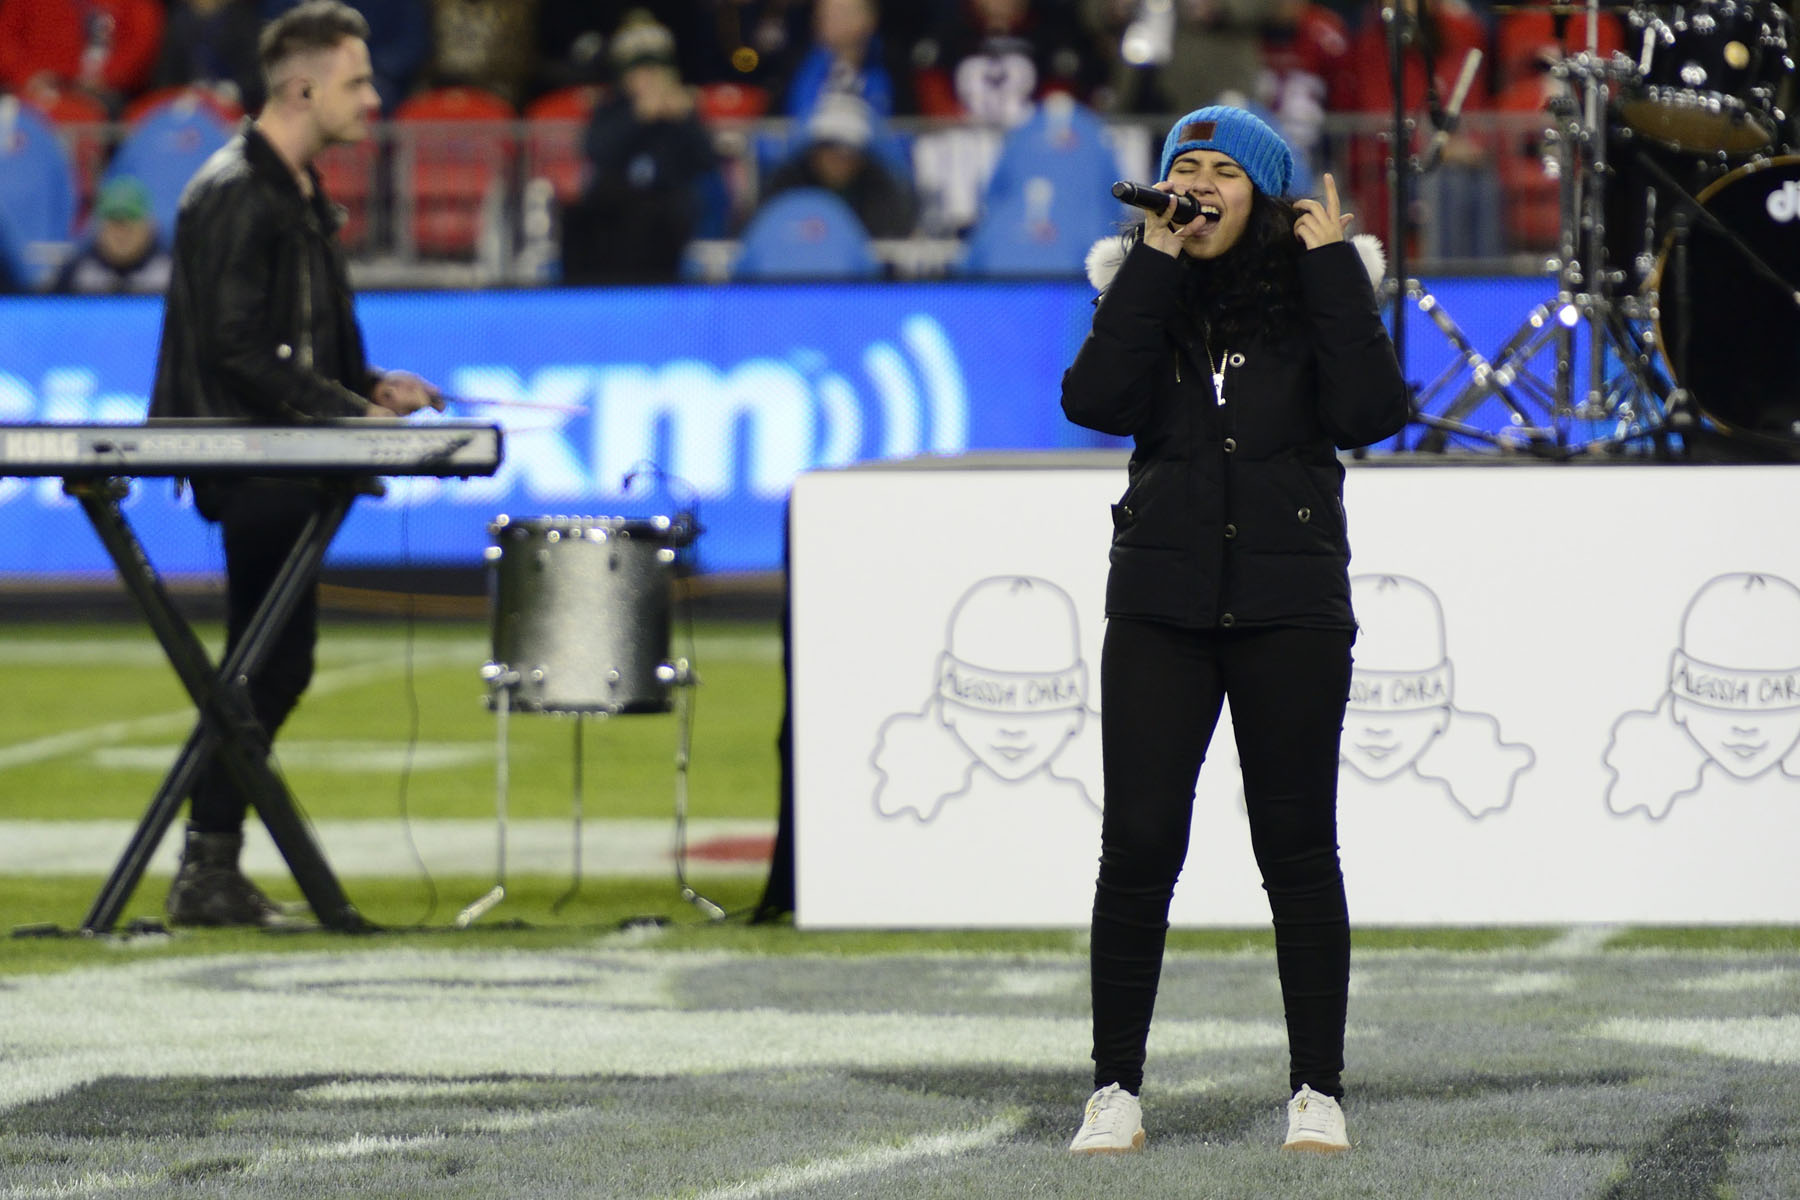 His Excellency the Right Honourable David Johnston, Governor General of Canada, attended the 104th Grey Cup championship game at BMO Field, in Toronto, on November 27, 2016. Canadian singer-songwriter, Alessia Cara performed at the kickoff show.